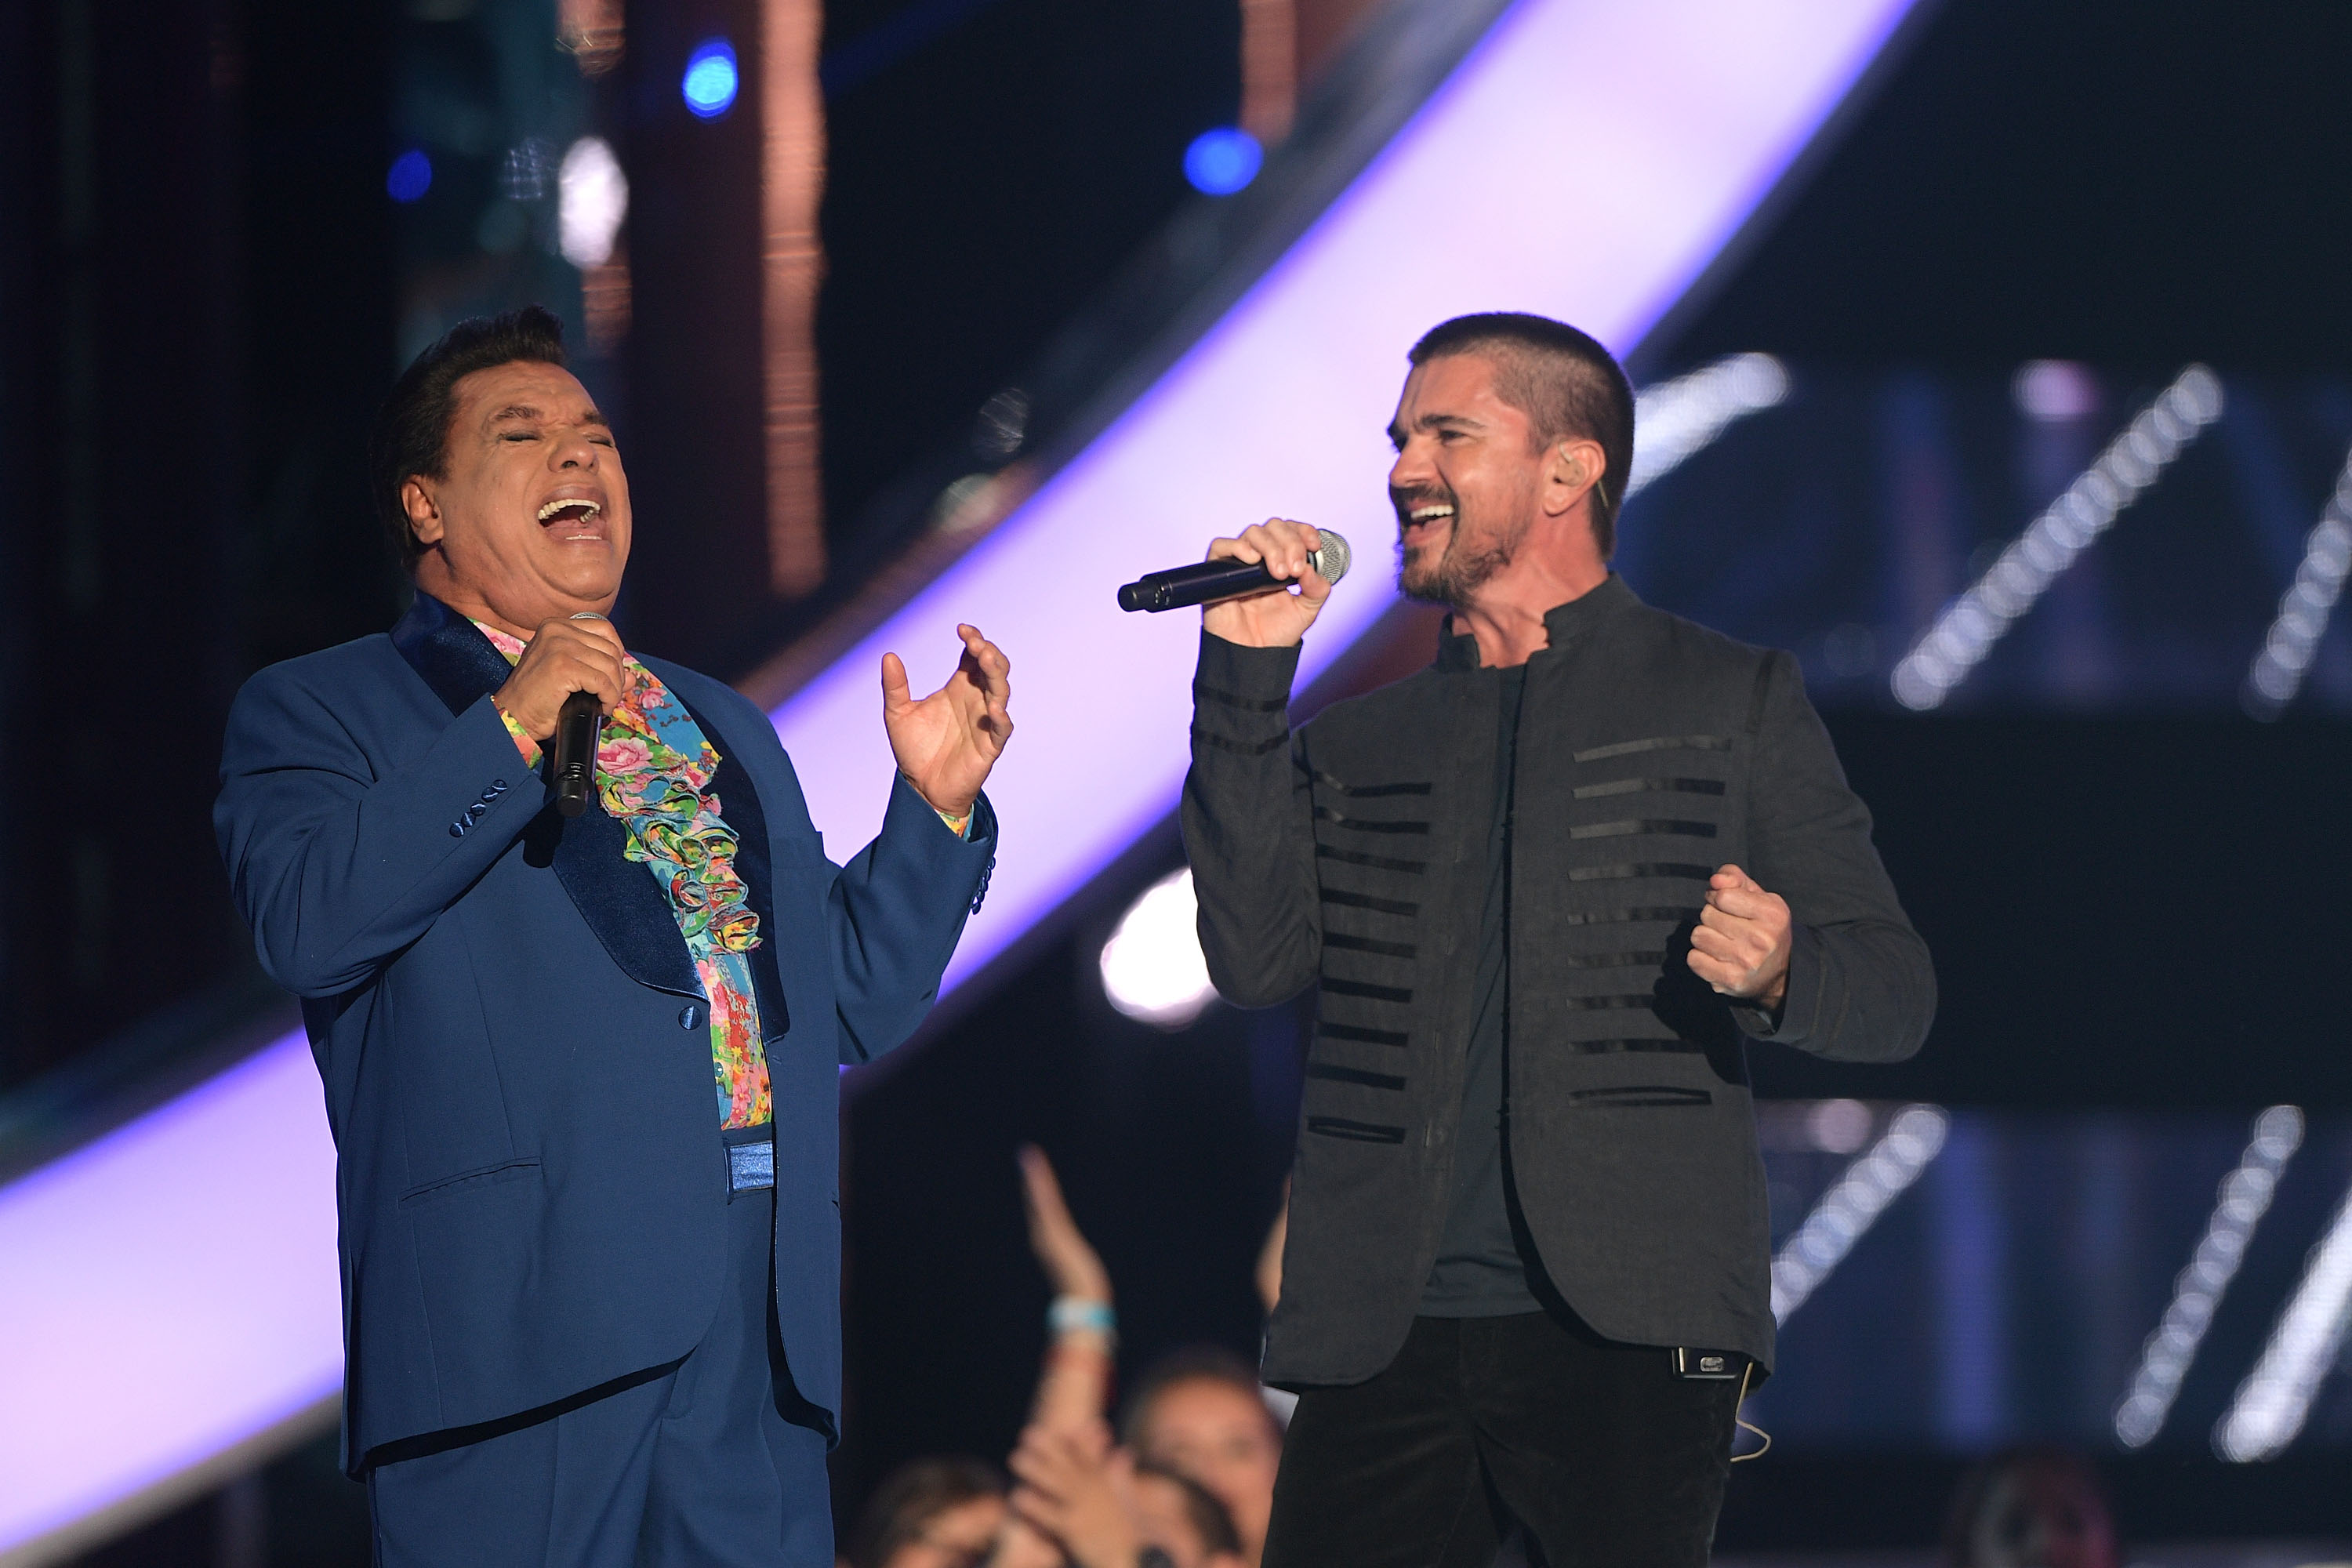 MIAMI, FL - APRIL 28: Juan Gabriel and Juanes performs onstage at the Billboard Latin Music Awards at Bank United Center on April 28, 2016 in Miami, Florida. (Photo by Rodrigo Varela/Getty Images)